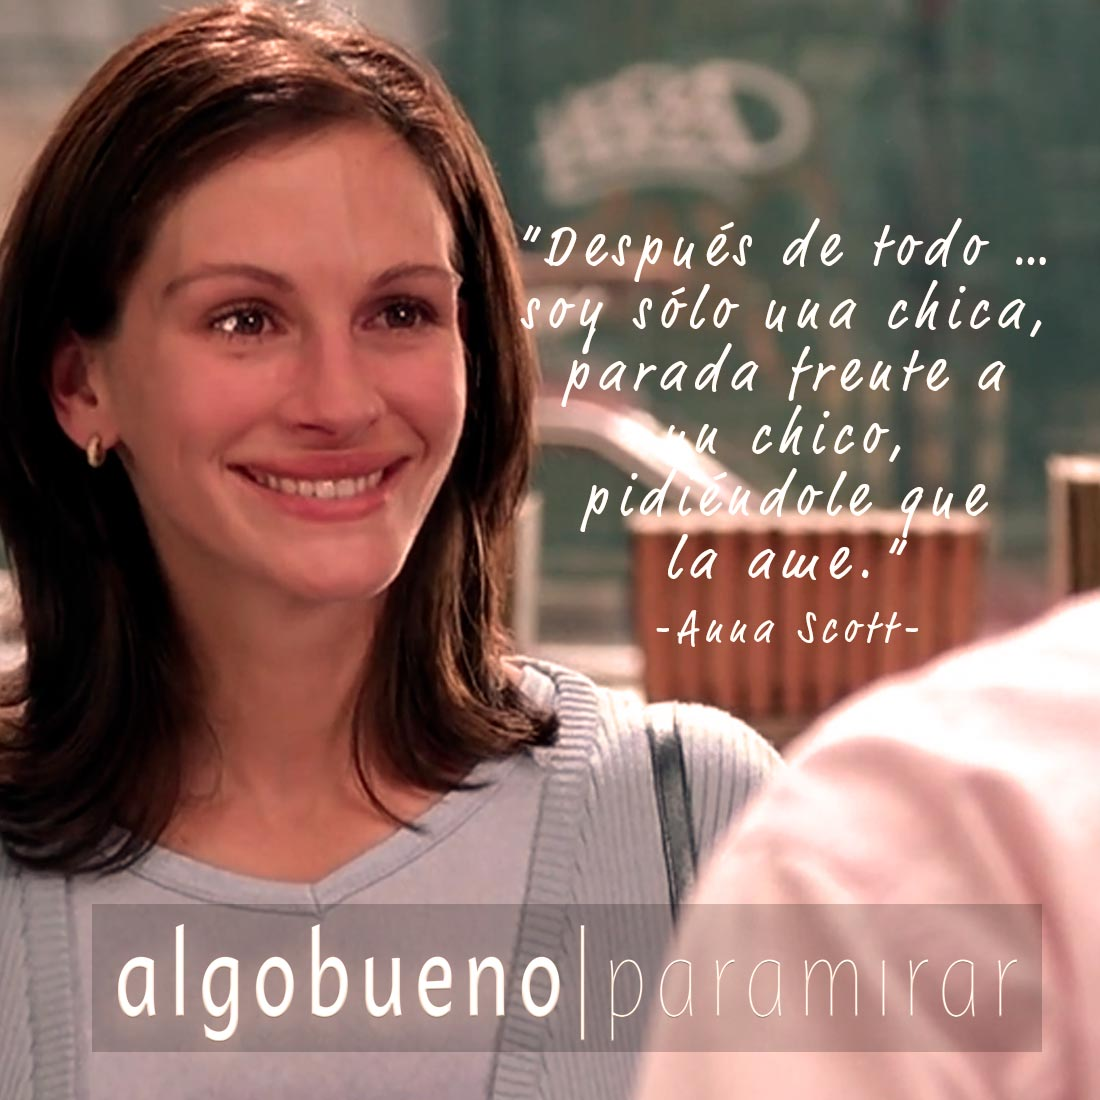 """Notting Hill (1999) Frase original: """"After all ... I'm just a girl, standing in front of a boy, asking him to love her."""" - Anna Scott - #OnlyFans #frases pic.twitter.com/PgKamhxfoI"""